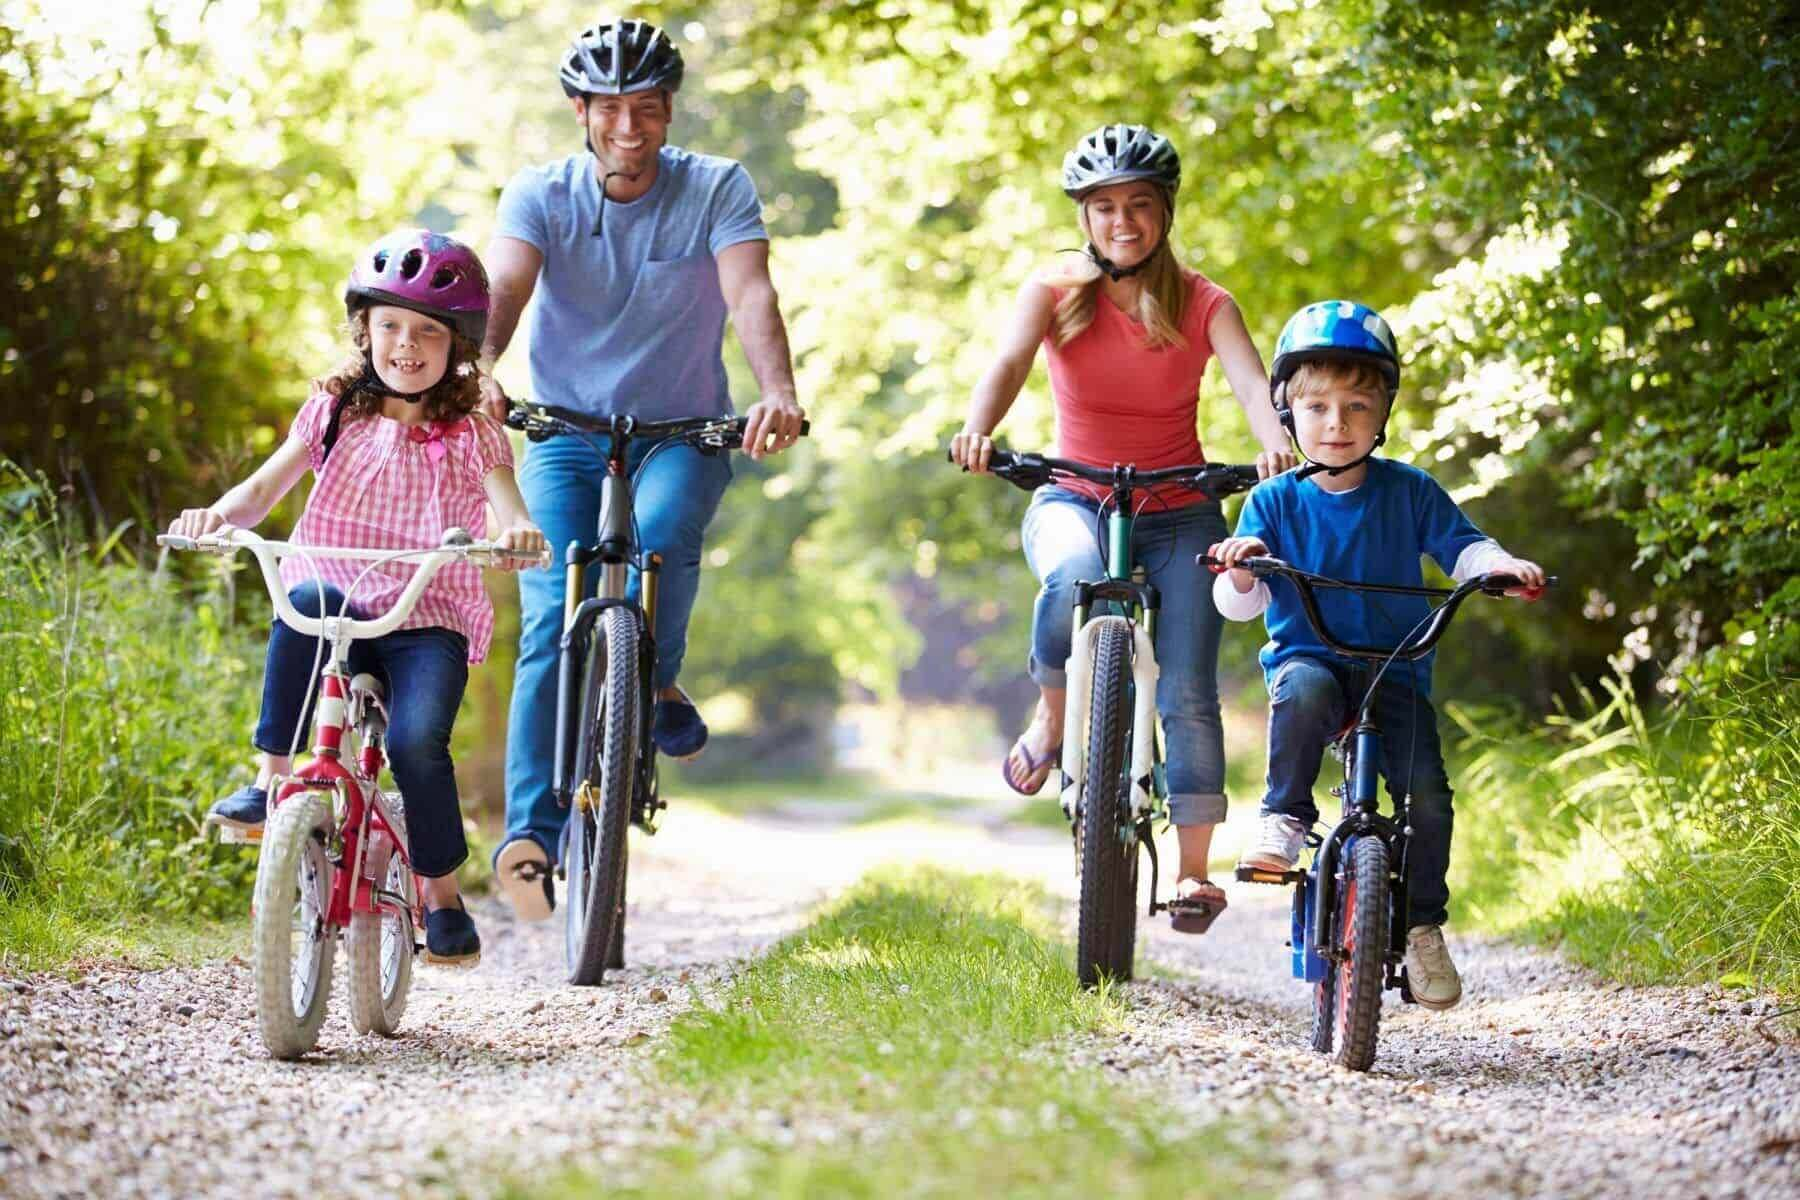 Going for a family bike ride